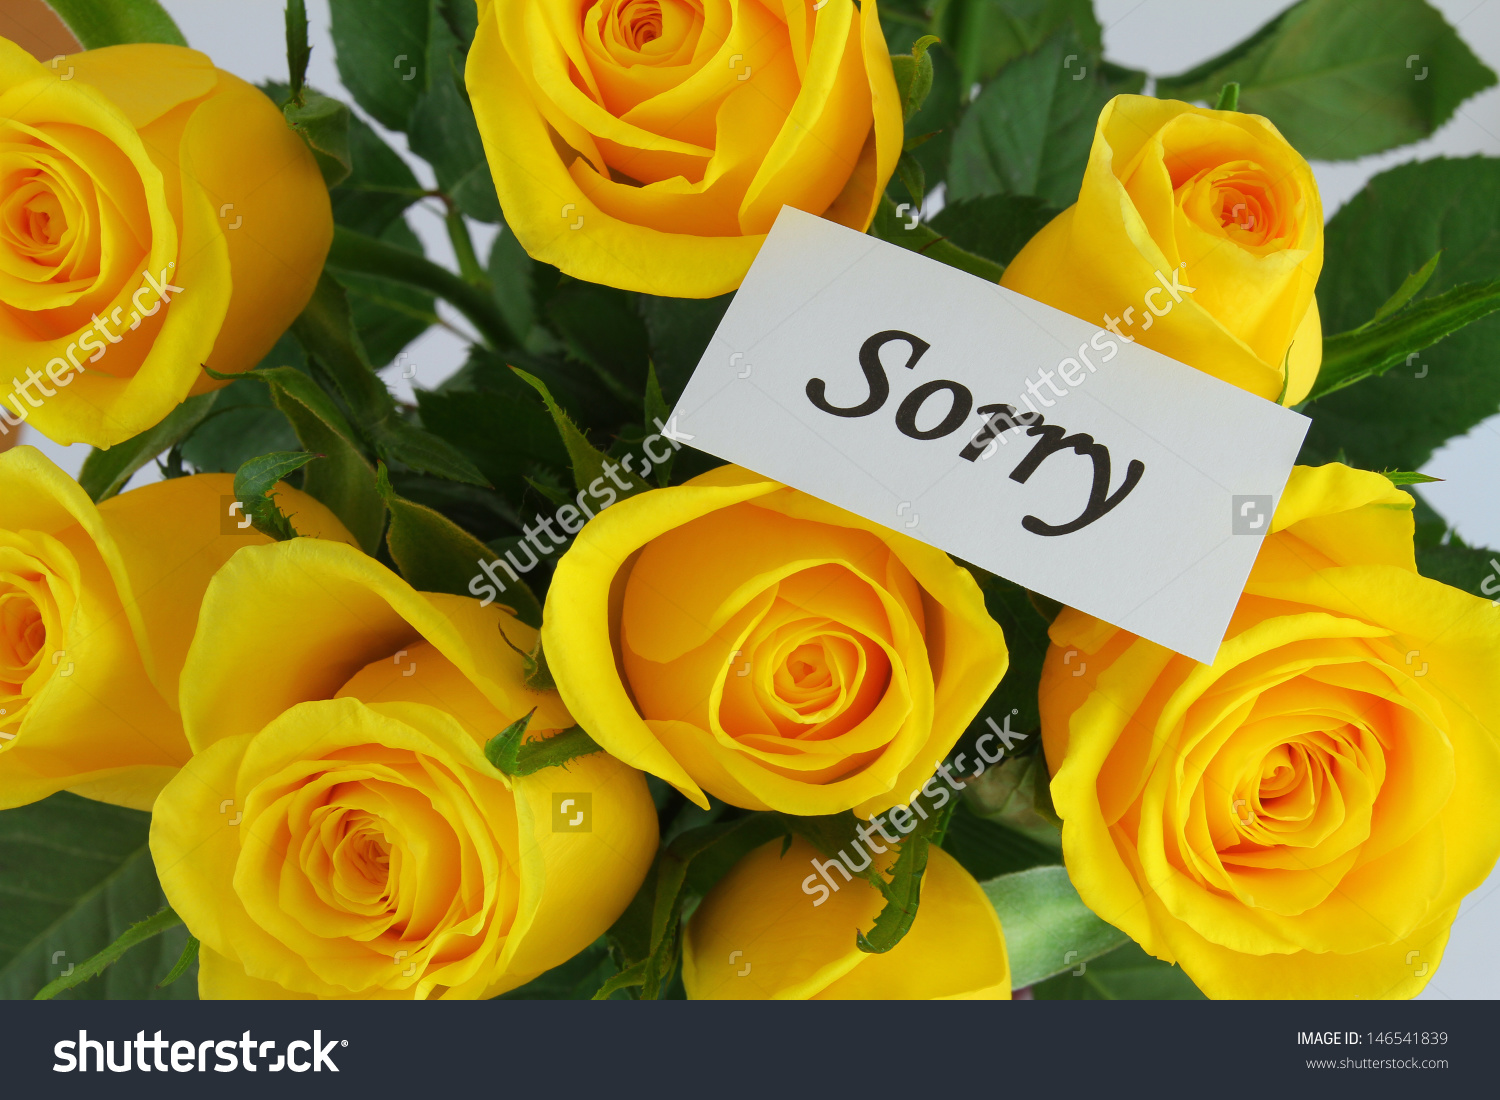 Sorry Card Yellow Roses Stock Photo 146541839 - Shutterstock